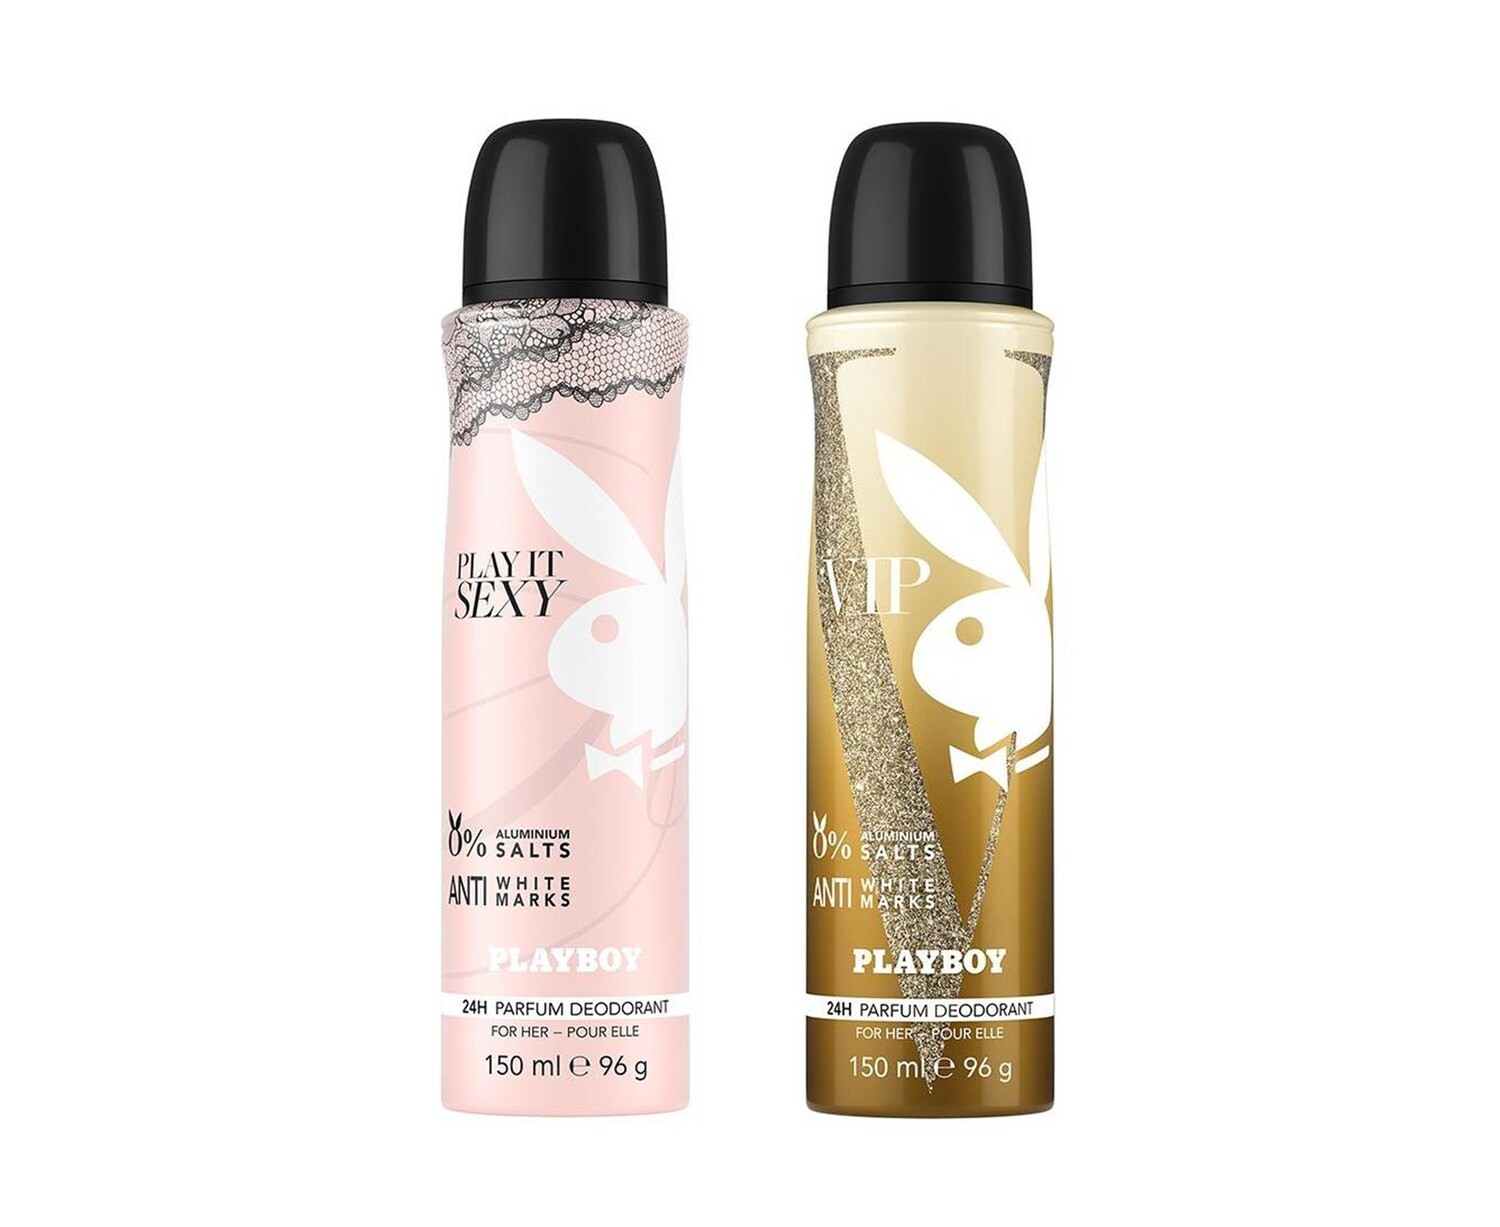 Playboy Sexy + VIP Deo New Combo Set - Pack of 2 Women